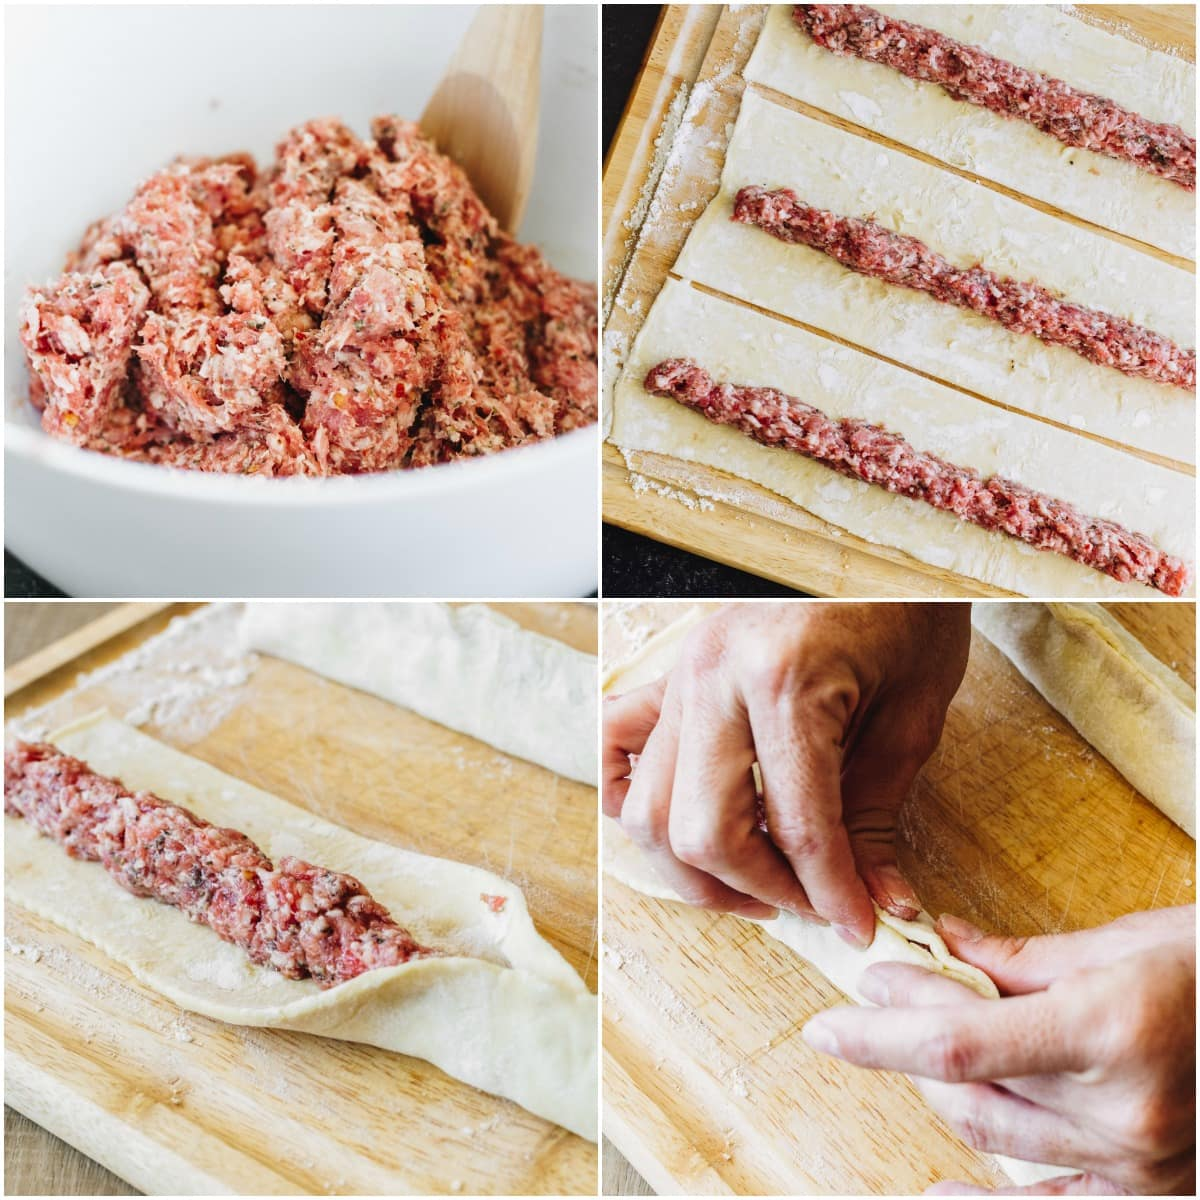 Step by step pictures of making puff pastry sausage rolls